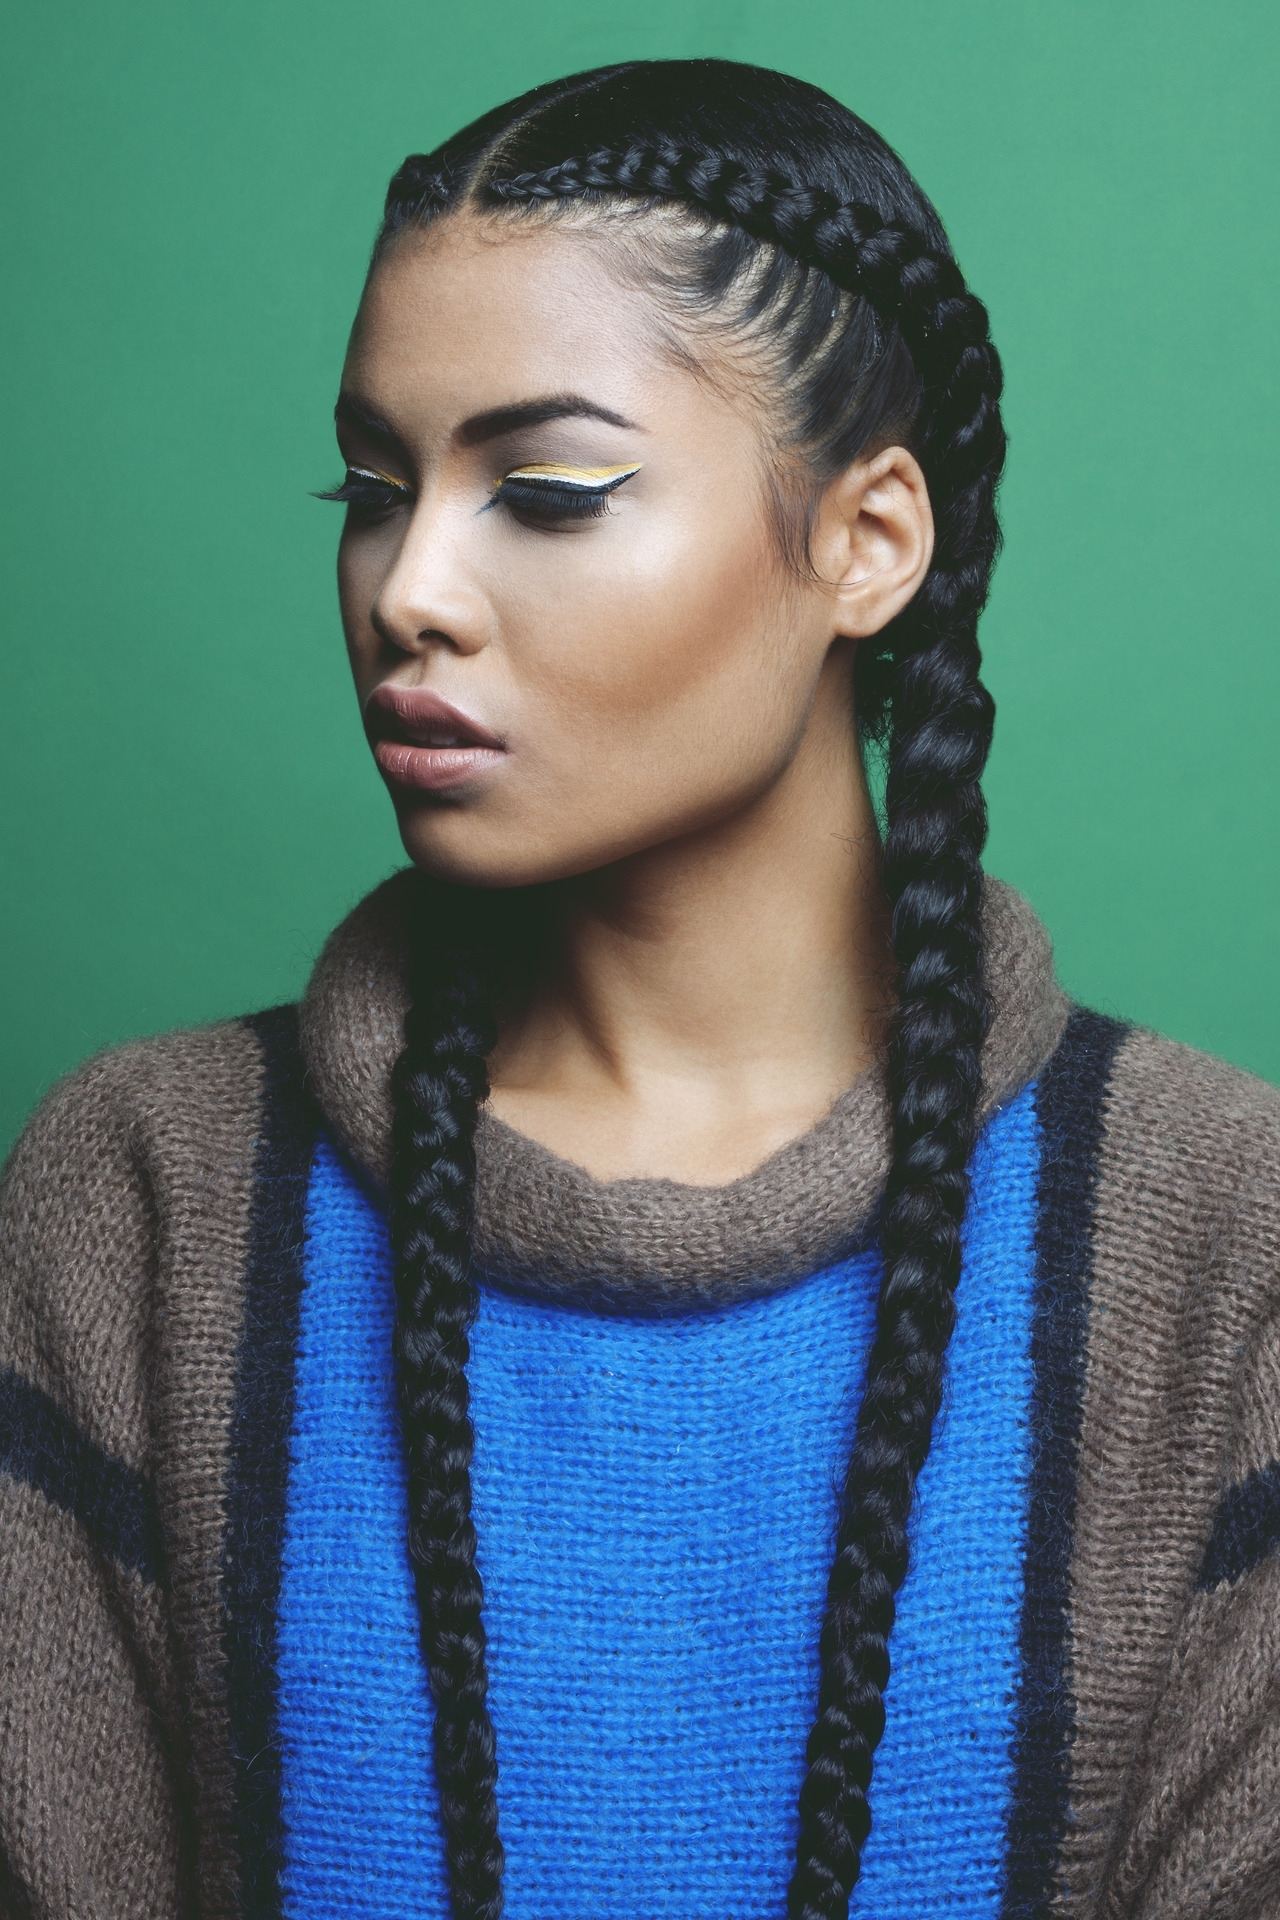 Endearing Braided Pigtail Hairstyles For Your 8 Big Corn Row Styles Pertaining To Favorite Pigtails Braided Hairstyles (Gallery 10 of 15)